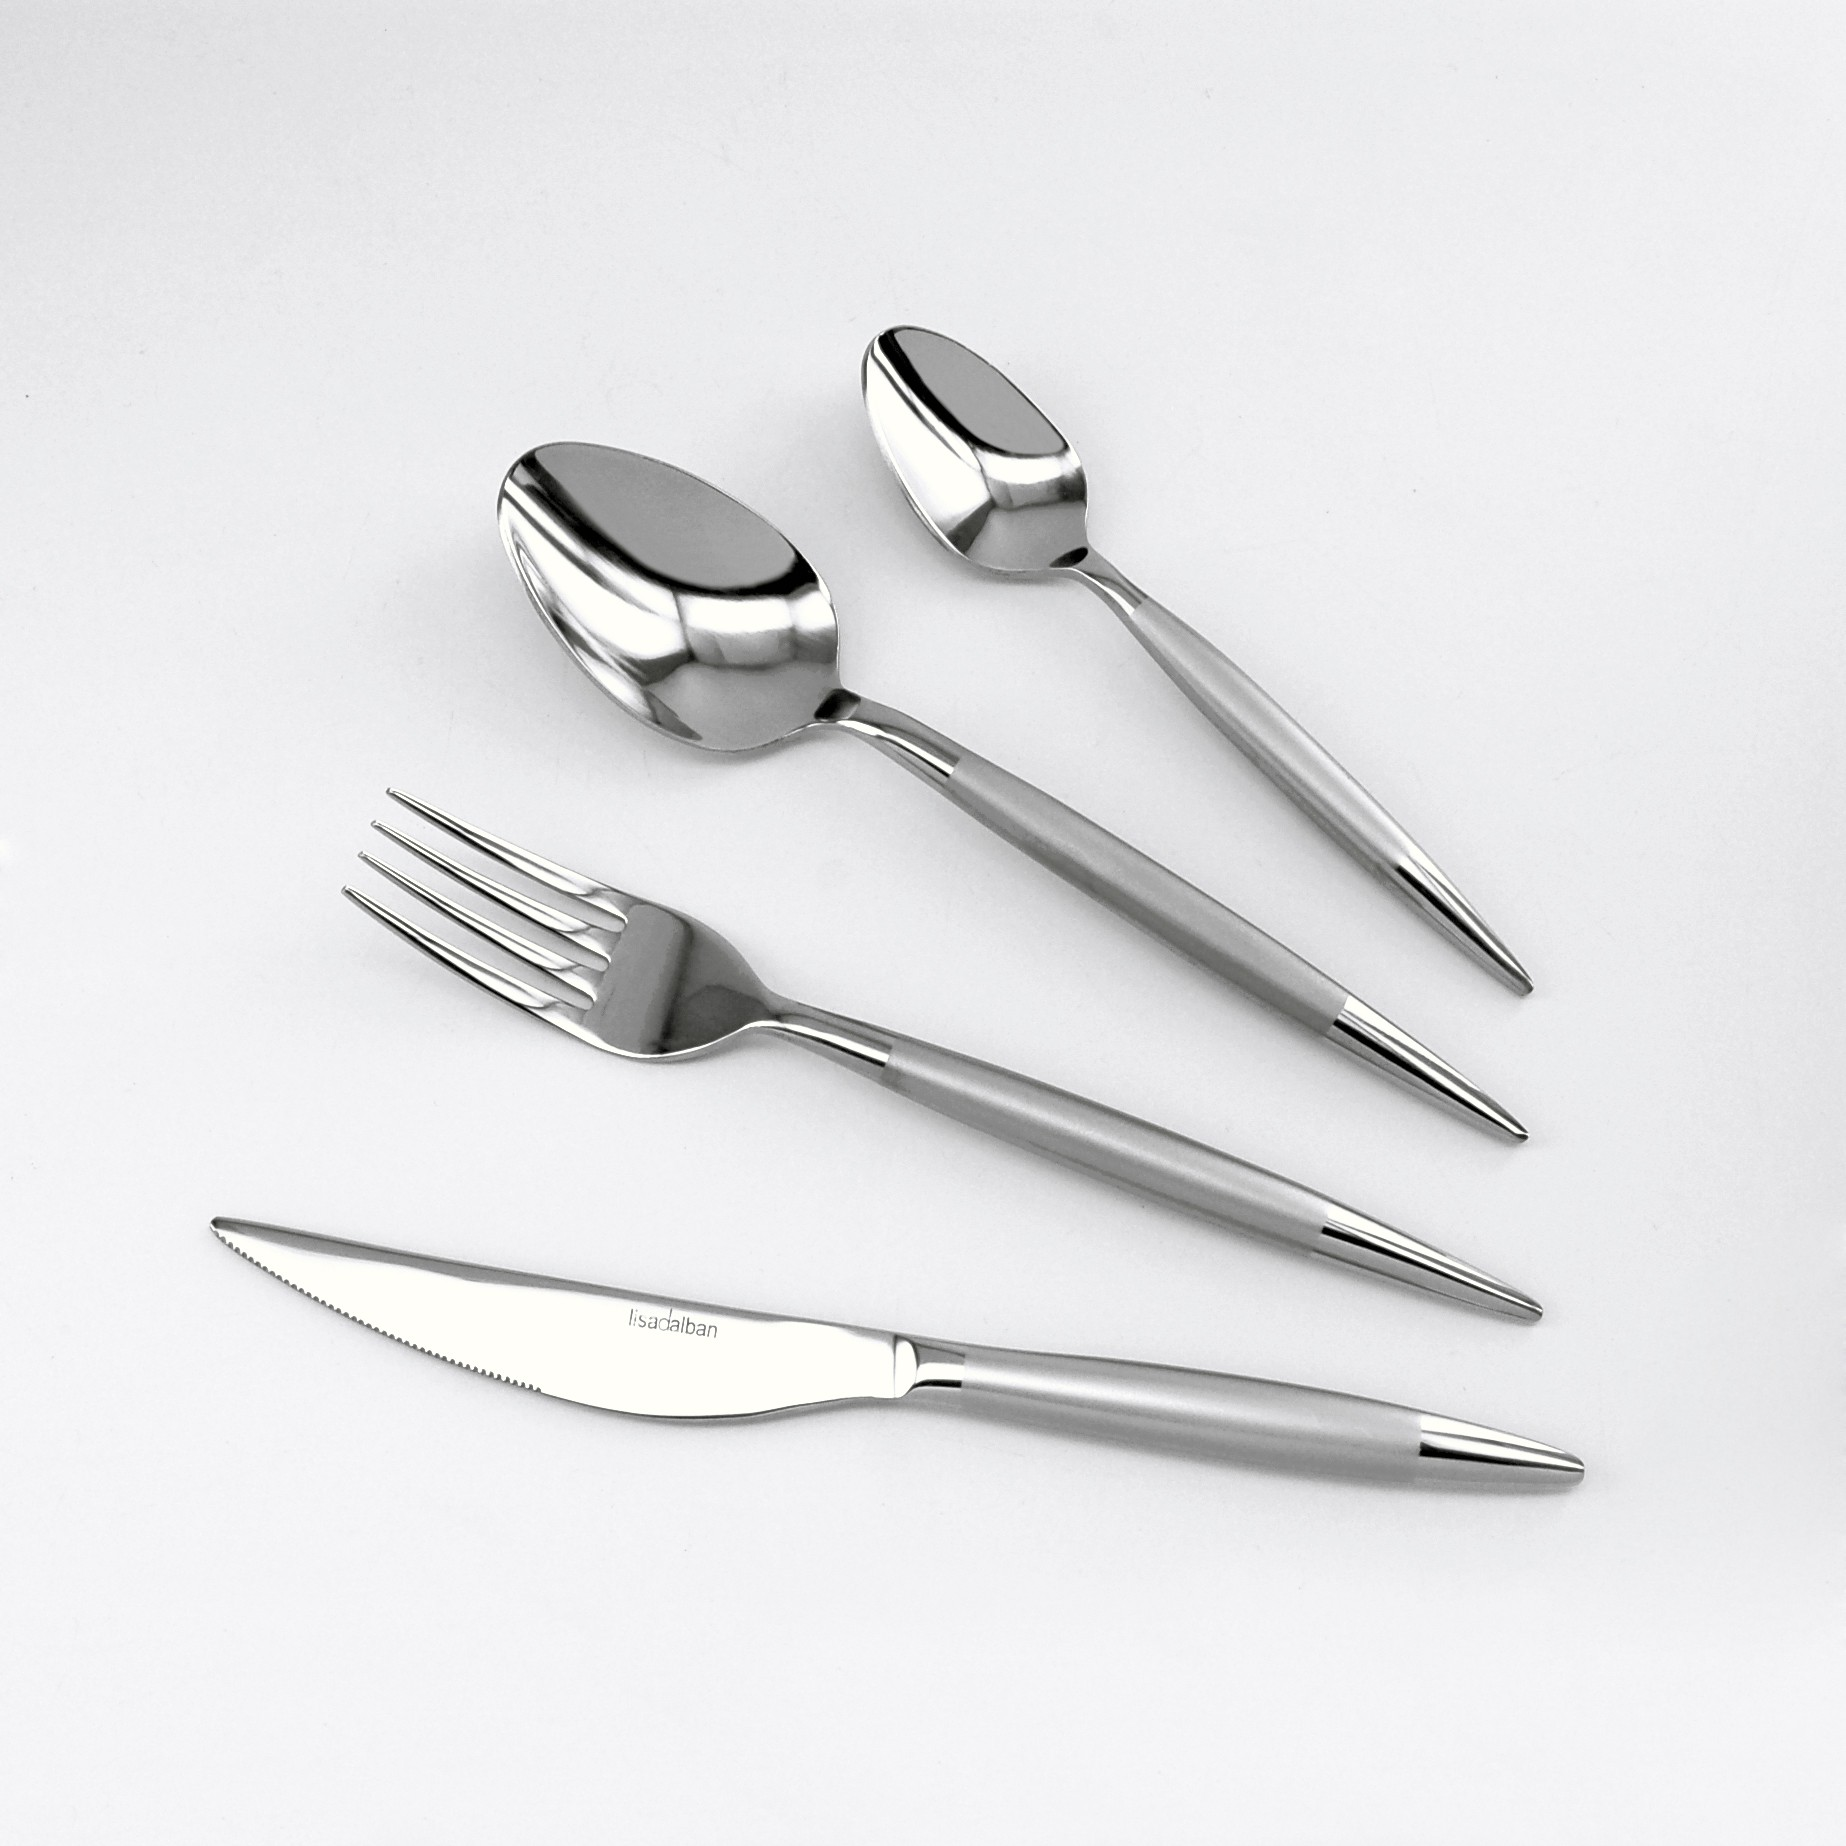 Alize - ménagere 16 pieces inox charme